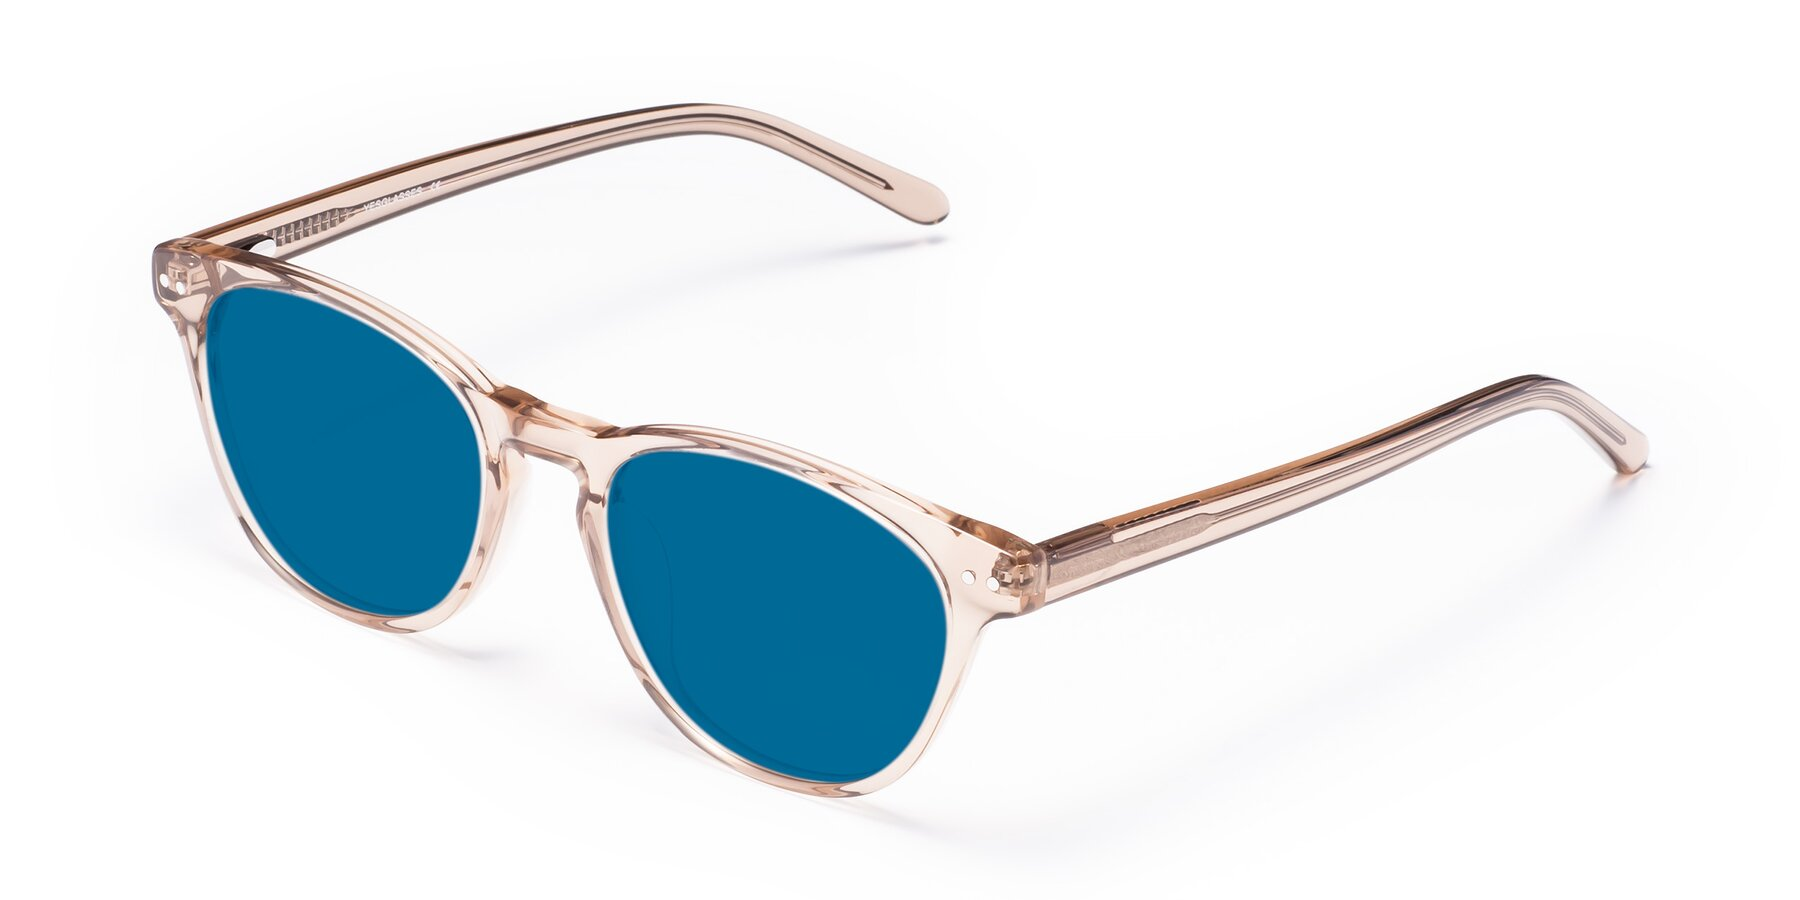 Angle of Blaze in light Brown with Blue Tinted Lenses